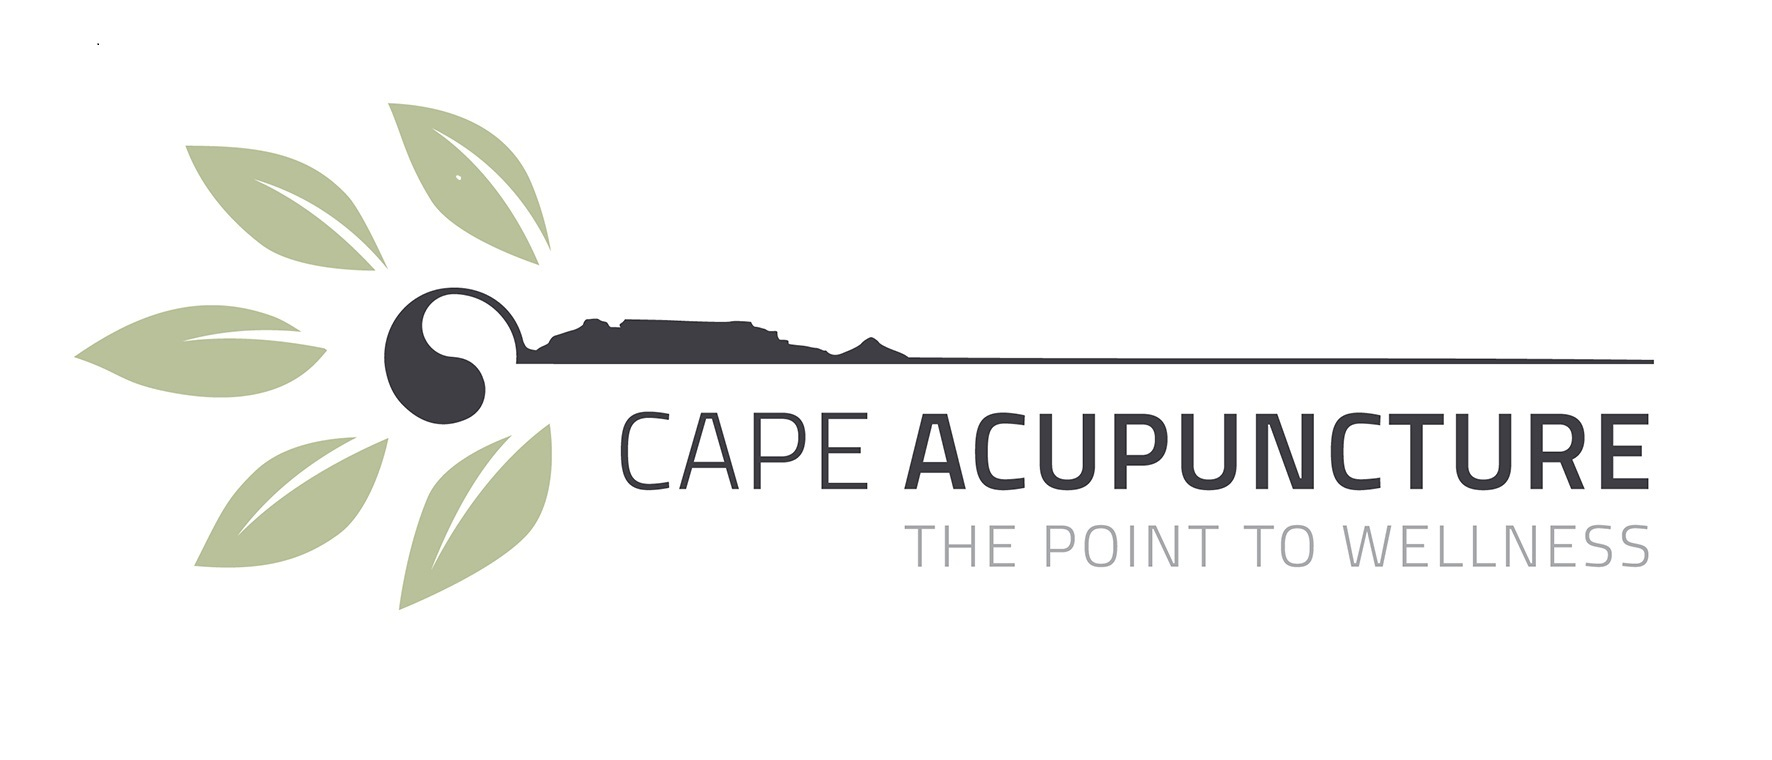 Cape Acupuncture